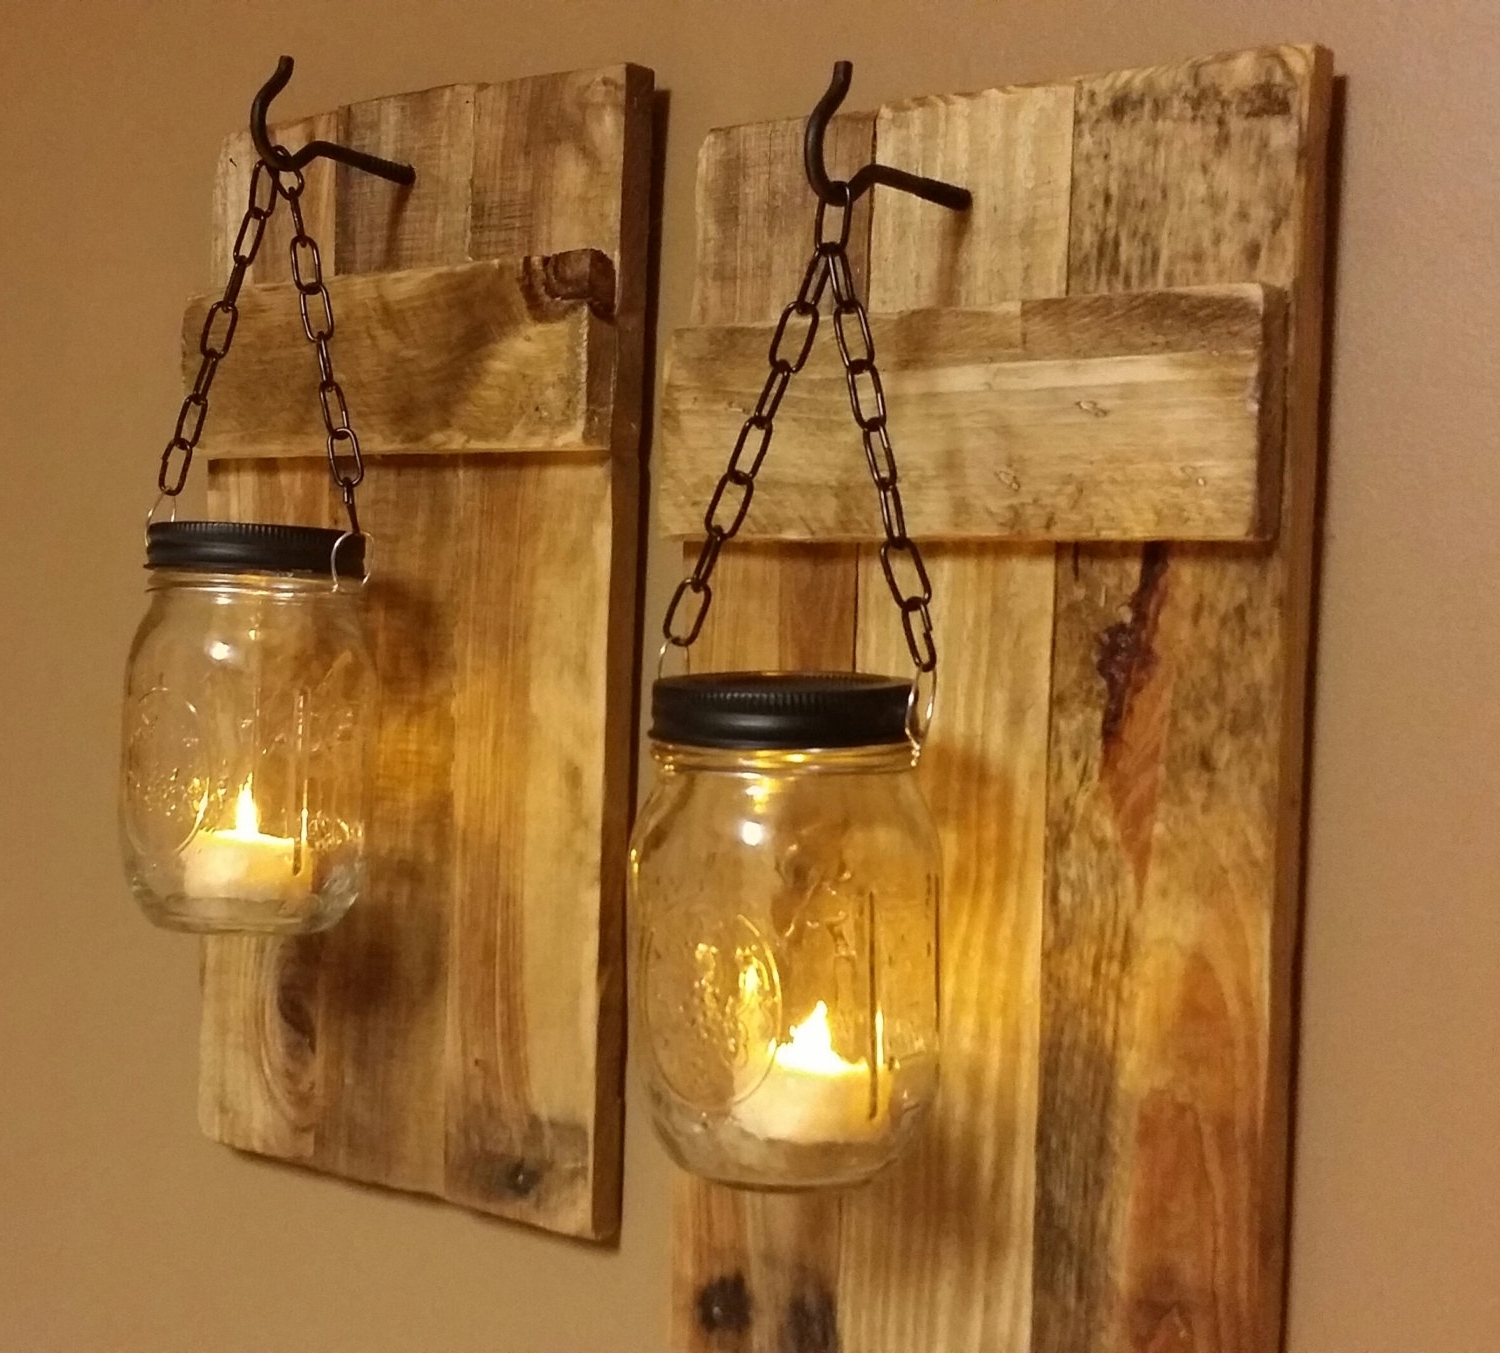 Most Recent Outdoor Wall Lighting Ideas With Diy Hanging Mason Jar Candle Regarding Diy Outdoor Wall Lights (View 3 of 20)